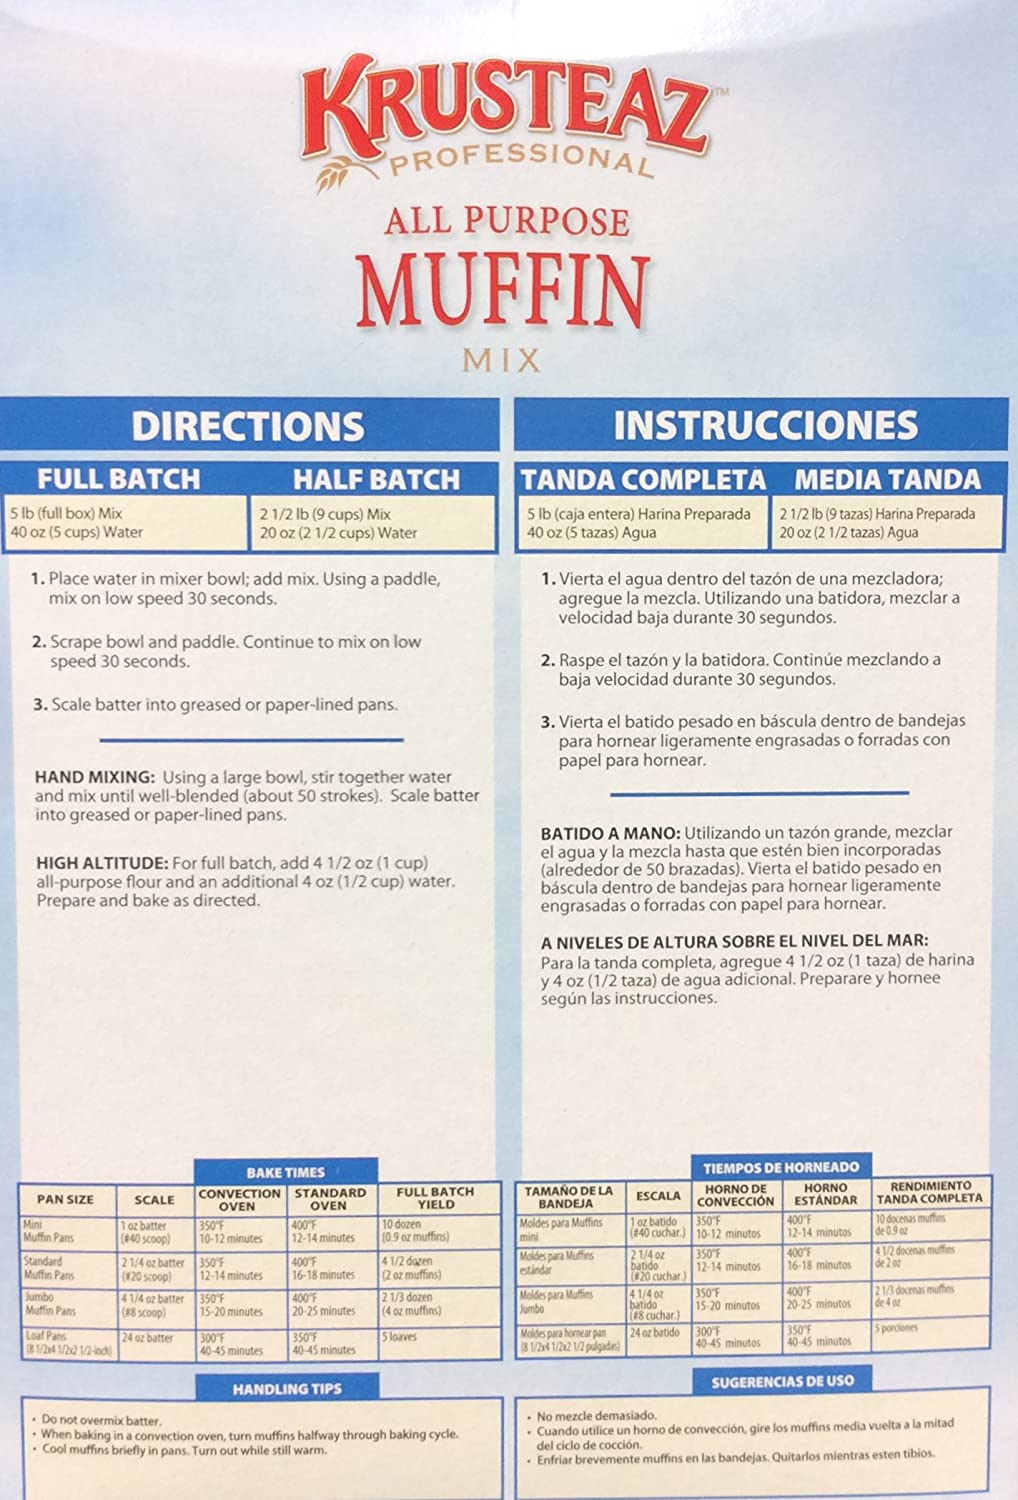 Amazon.com : Krusteaz ALL PURPOSE MUFFIN Mix 5lb. (4 Pack) : Grocery & Gourmet Food